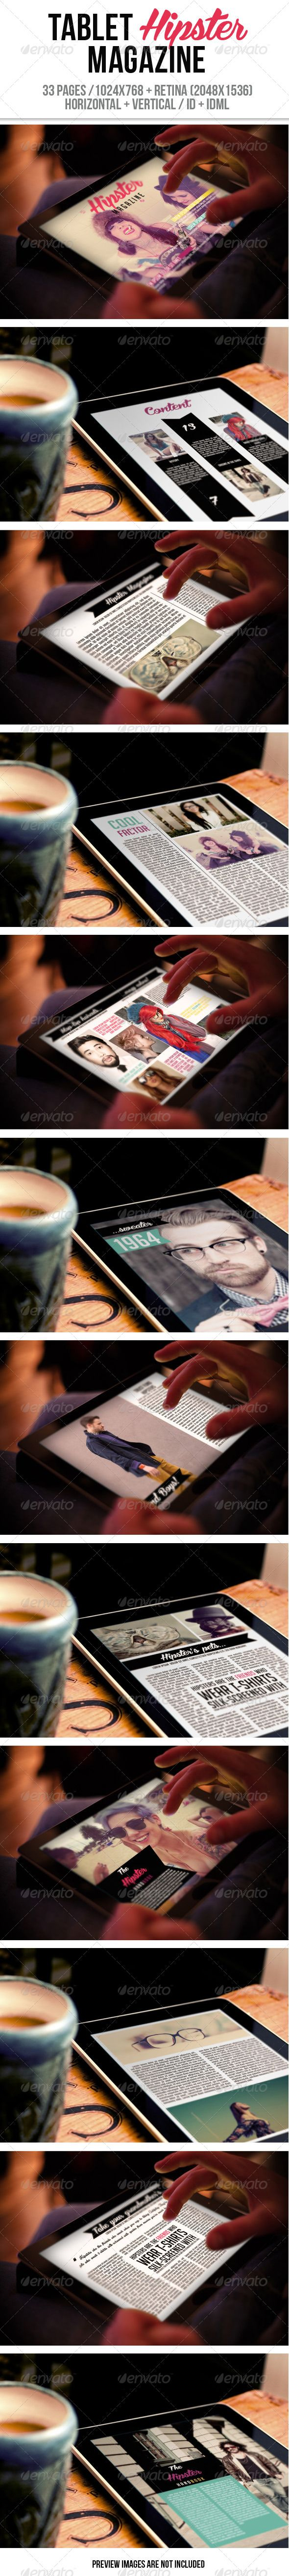 Tablet Hipster Magazine, ID Template #epublishing #emagazine #retina #hipster